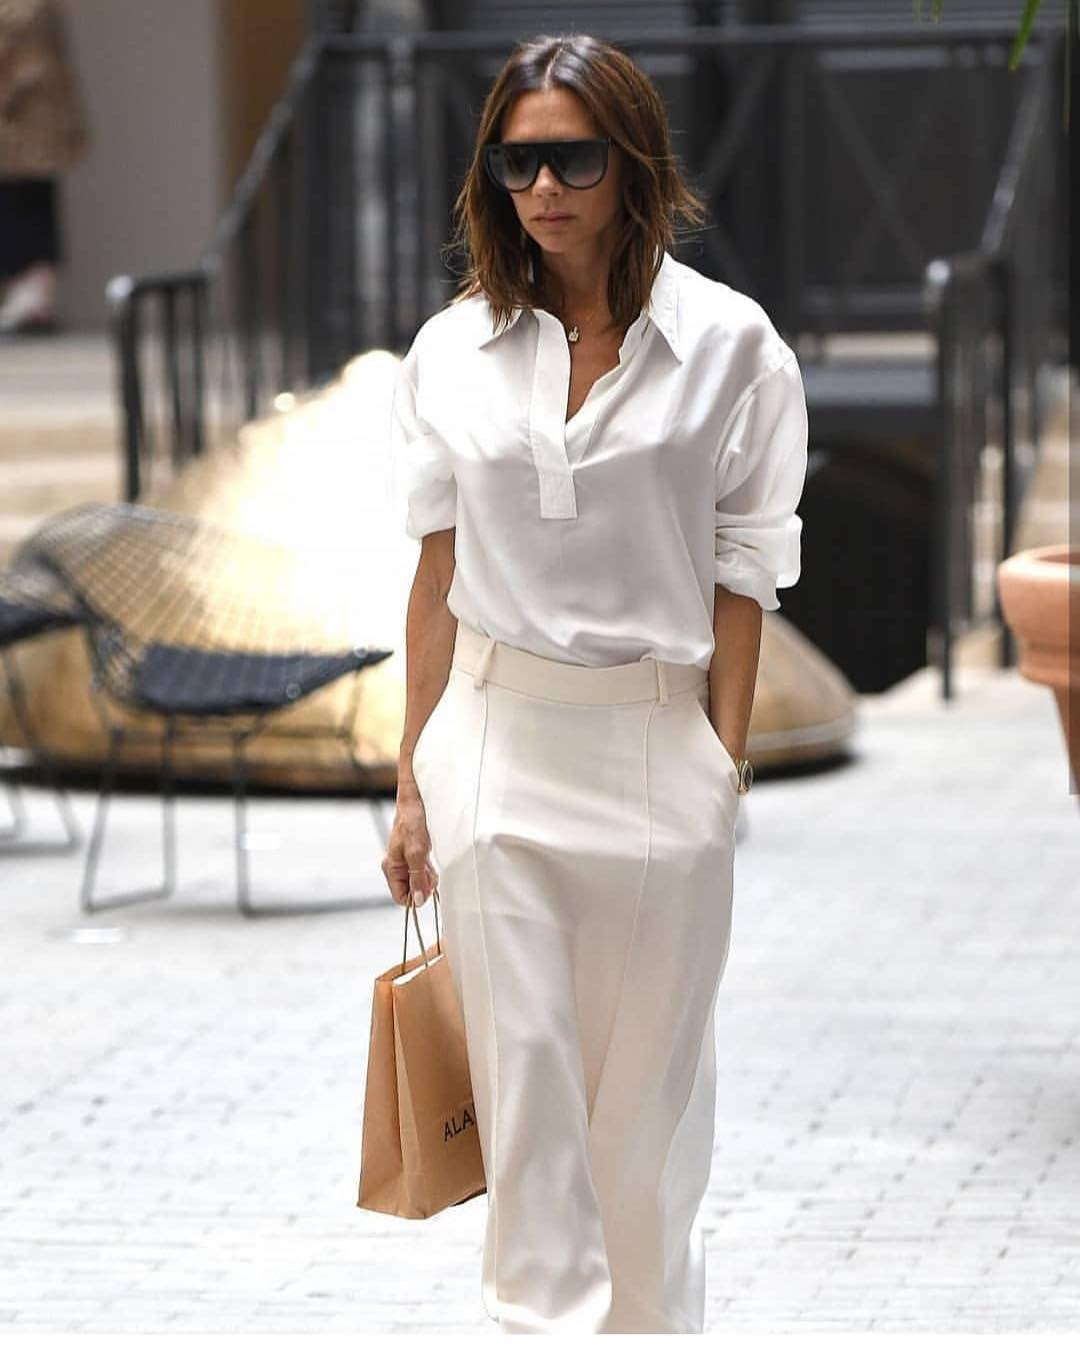 All White Outfit Worn By Victoria Beckham For Summer 2019